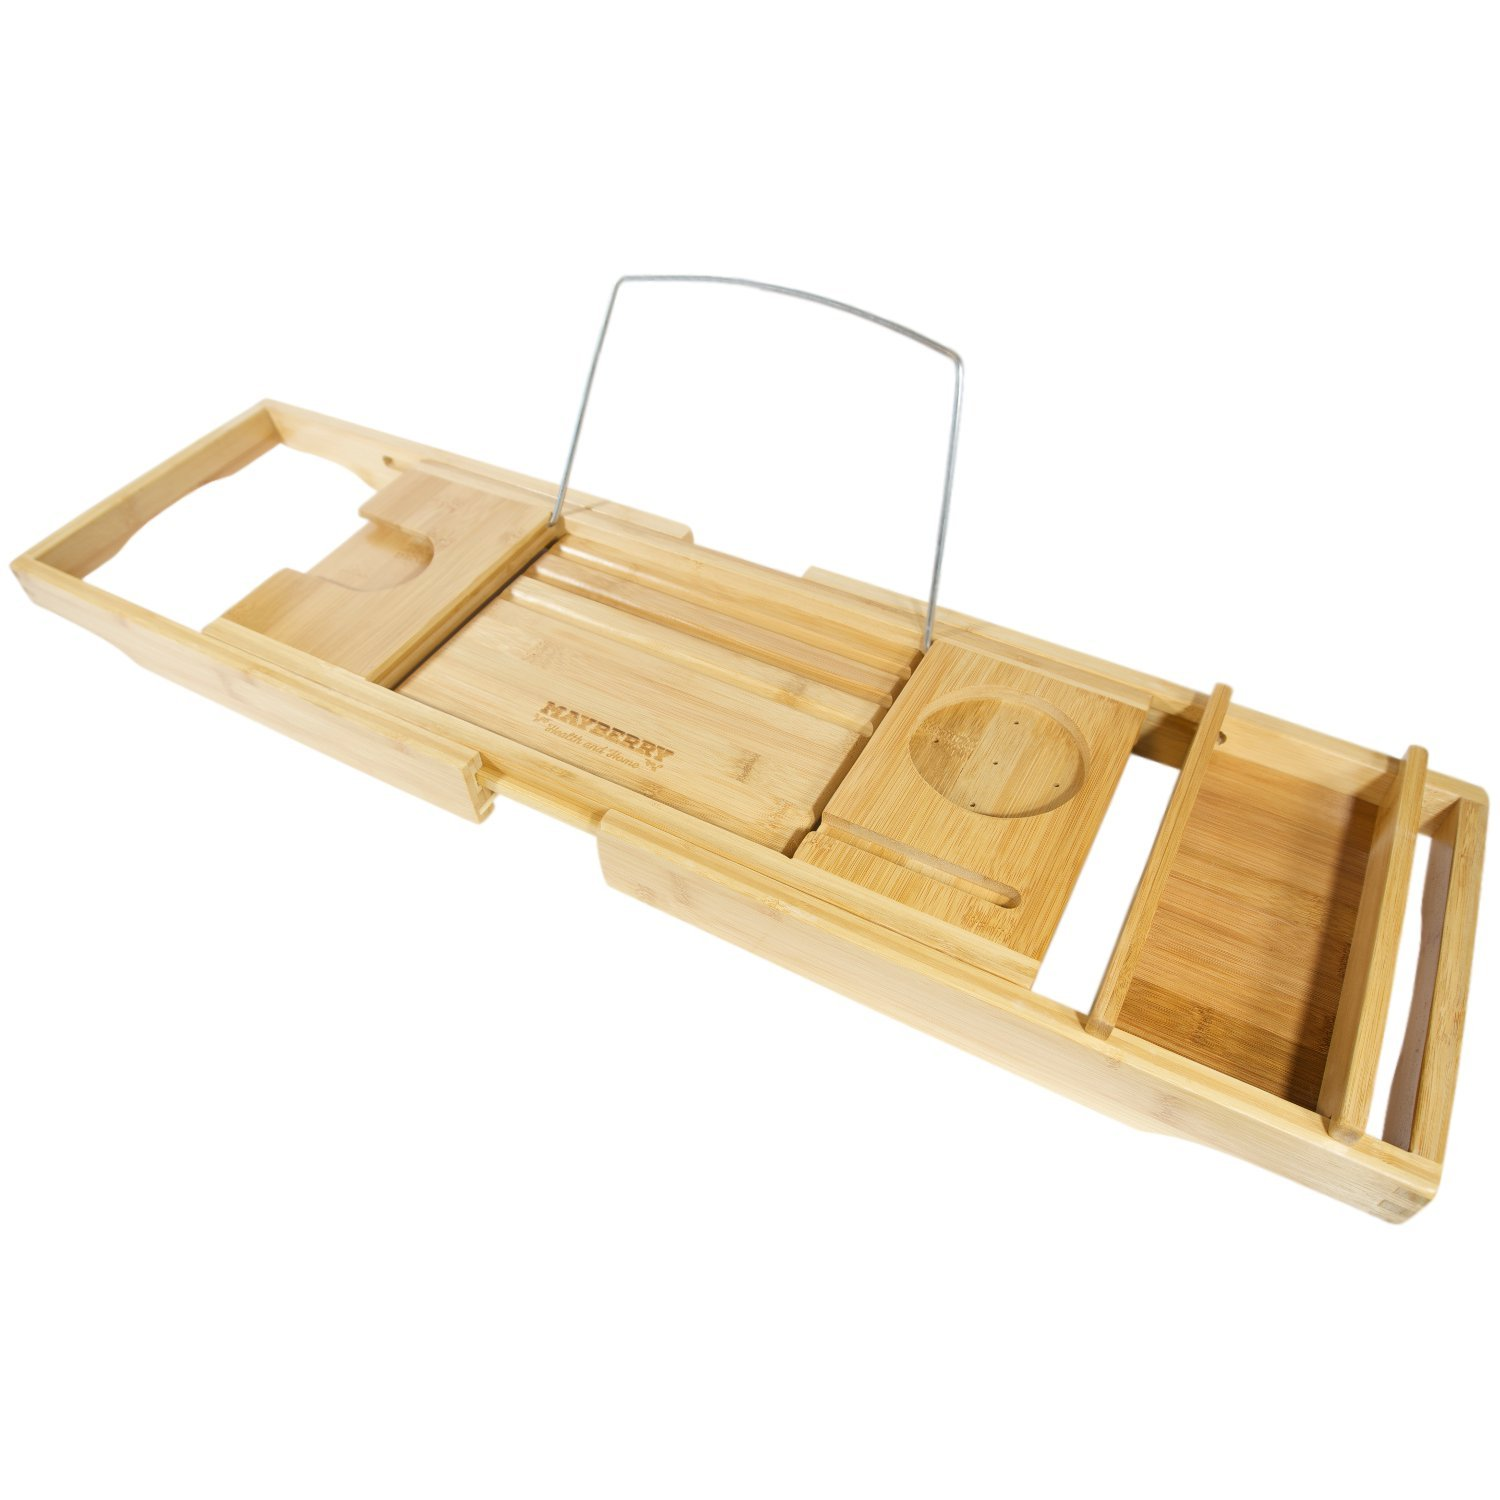 Cheap Bathtub Caddy Tray, find Bathtub Caddy Tray deals on line at ...